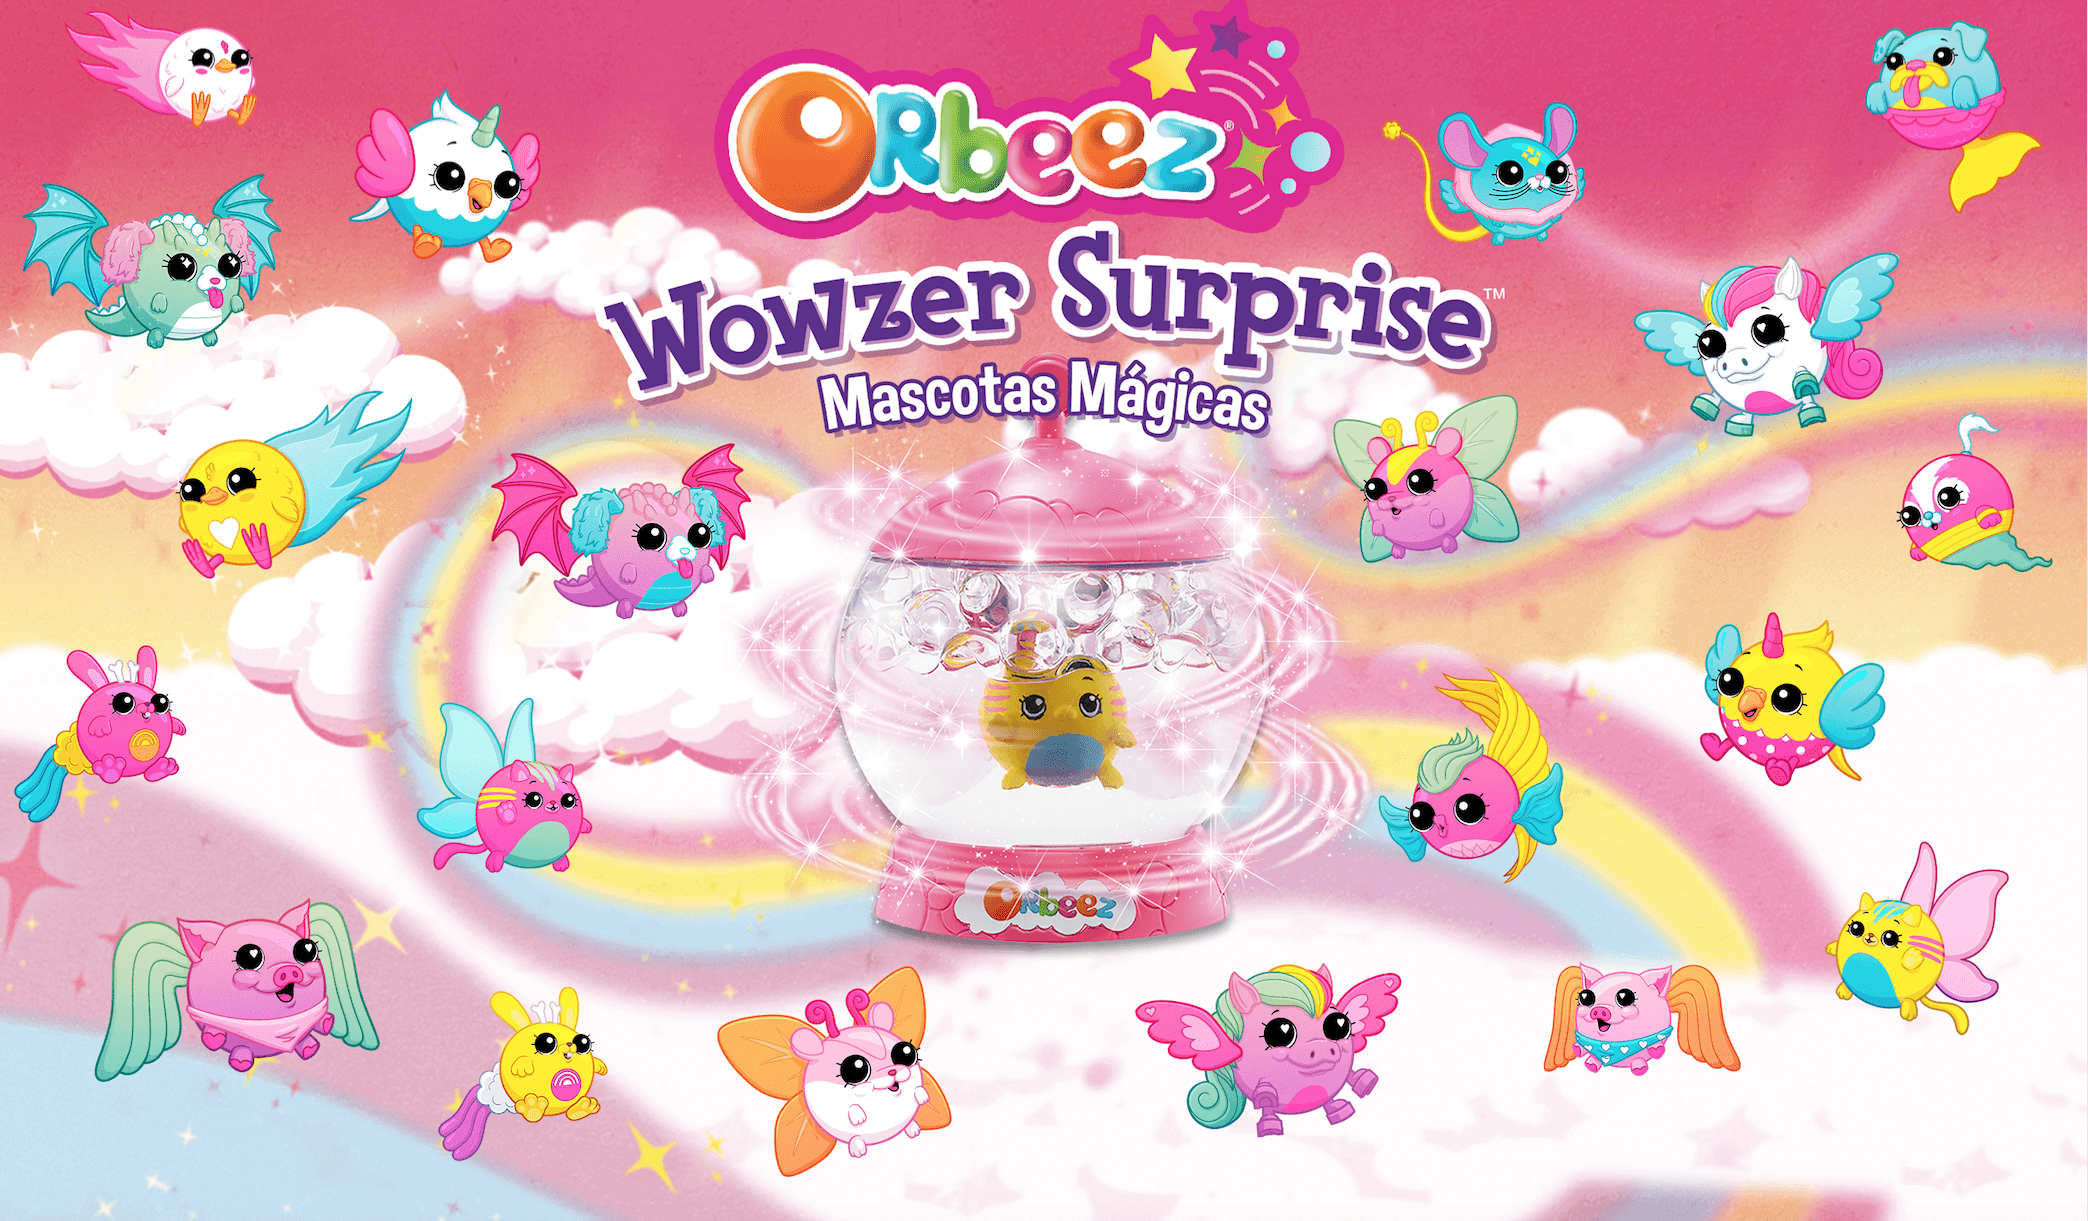 Orbeez Wowzer Surprise - mascotas mágicas